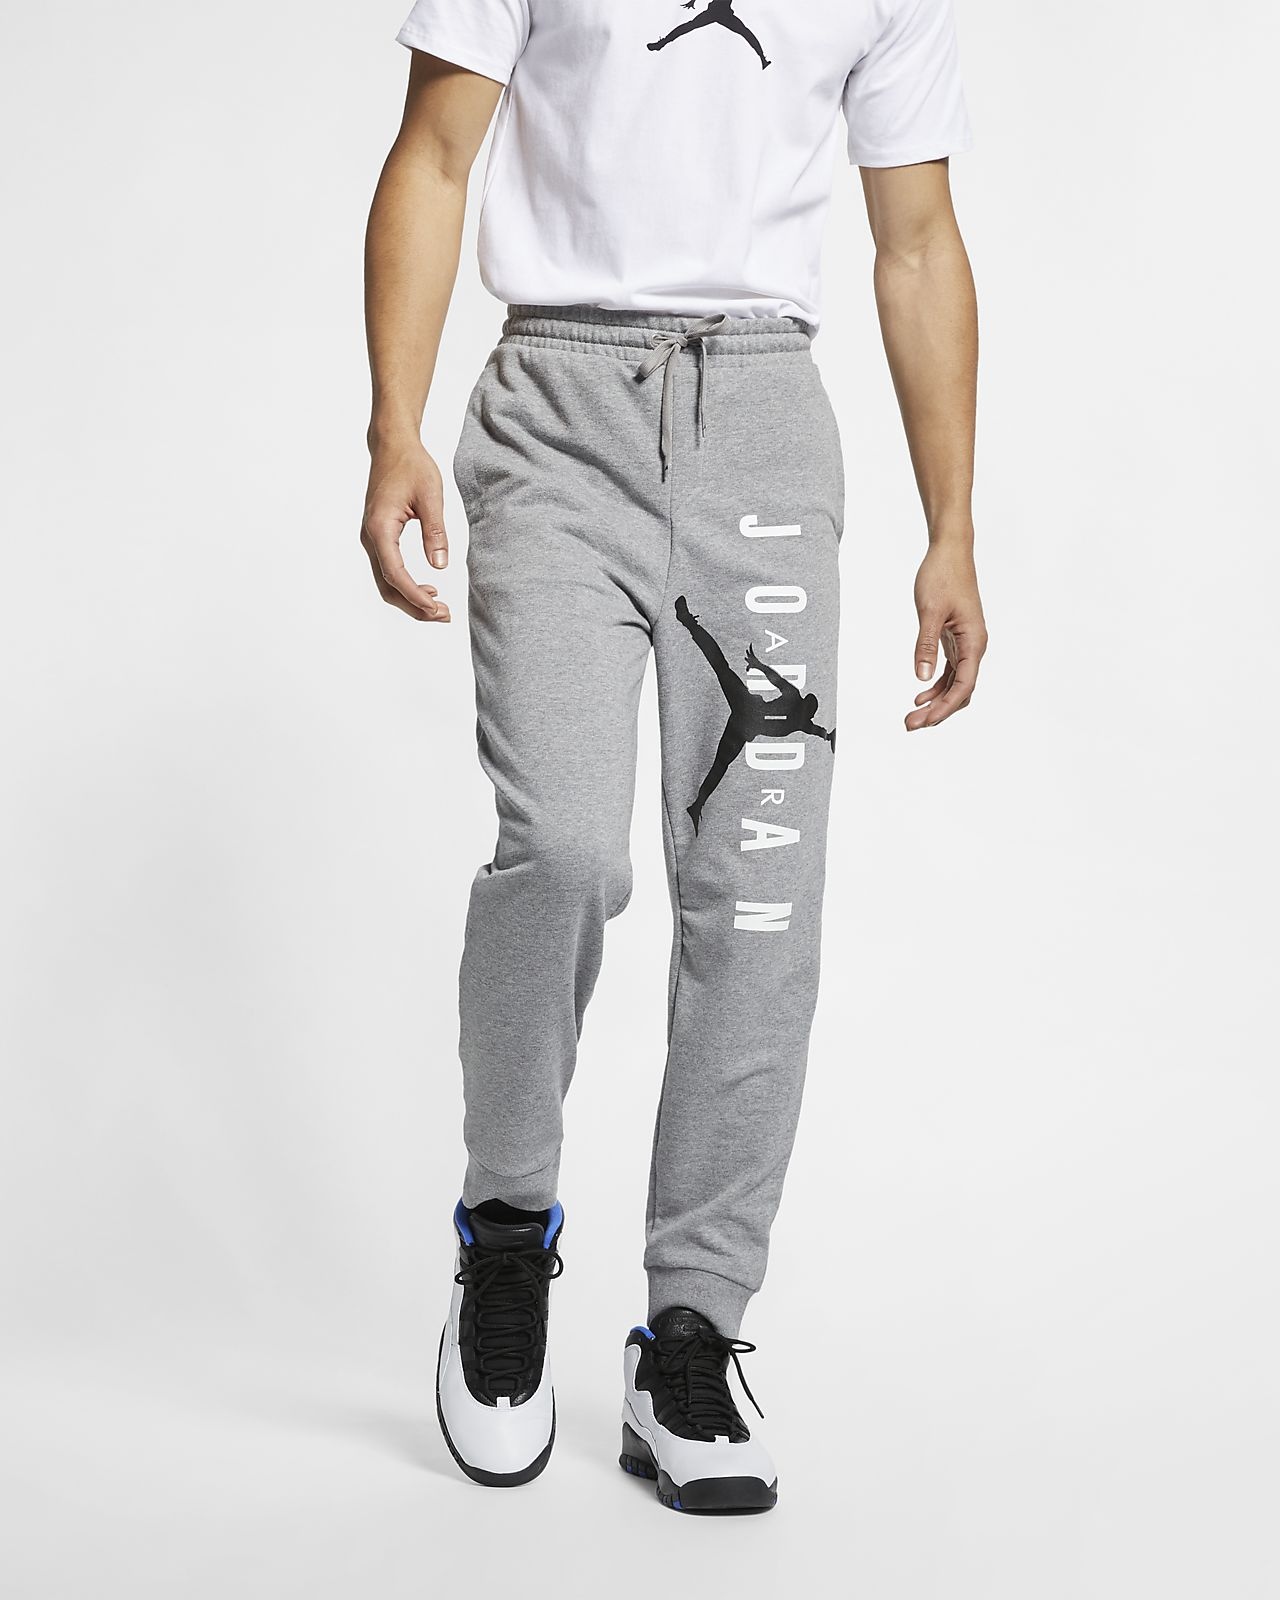 3707e81e2b4b52 Jordan Jumpman Air Men s Lightweight Fleece Trousers. Nike.com GB